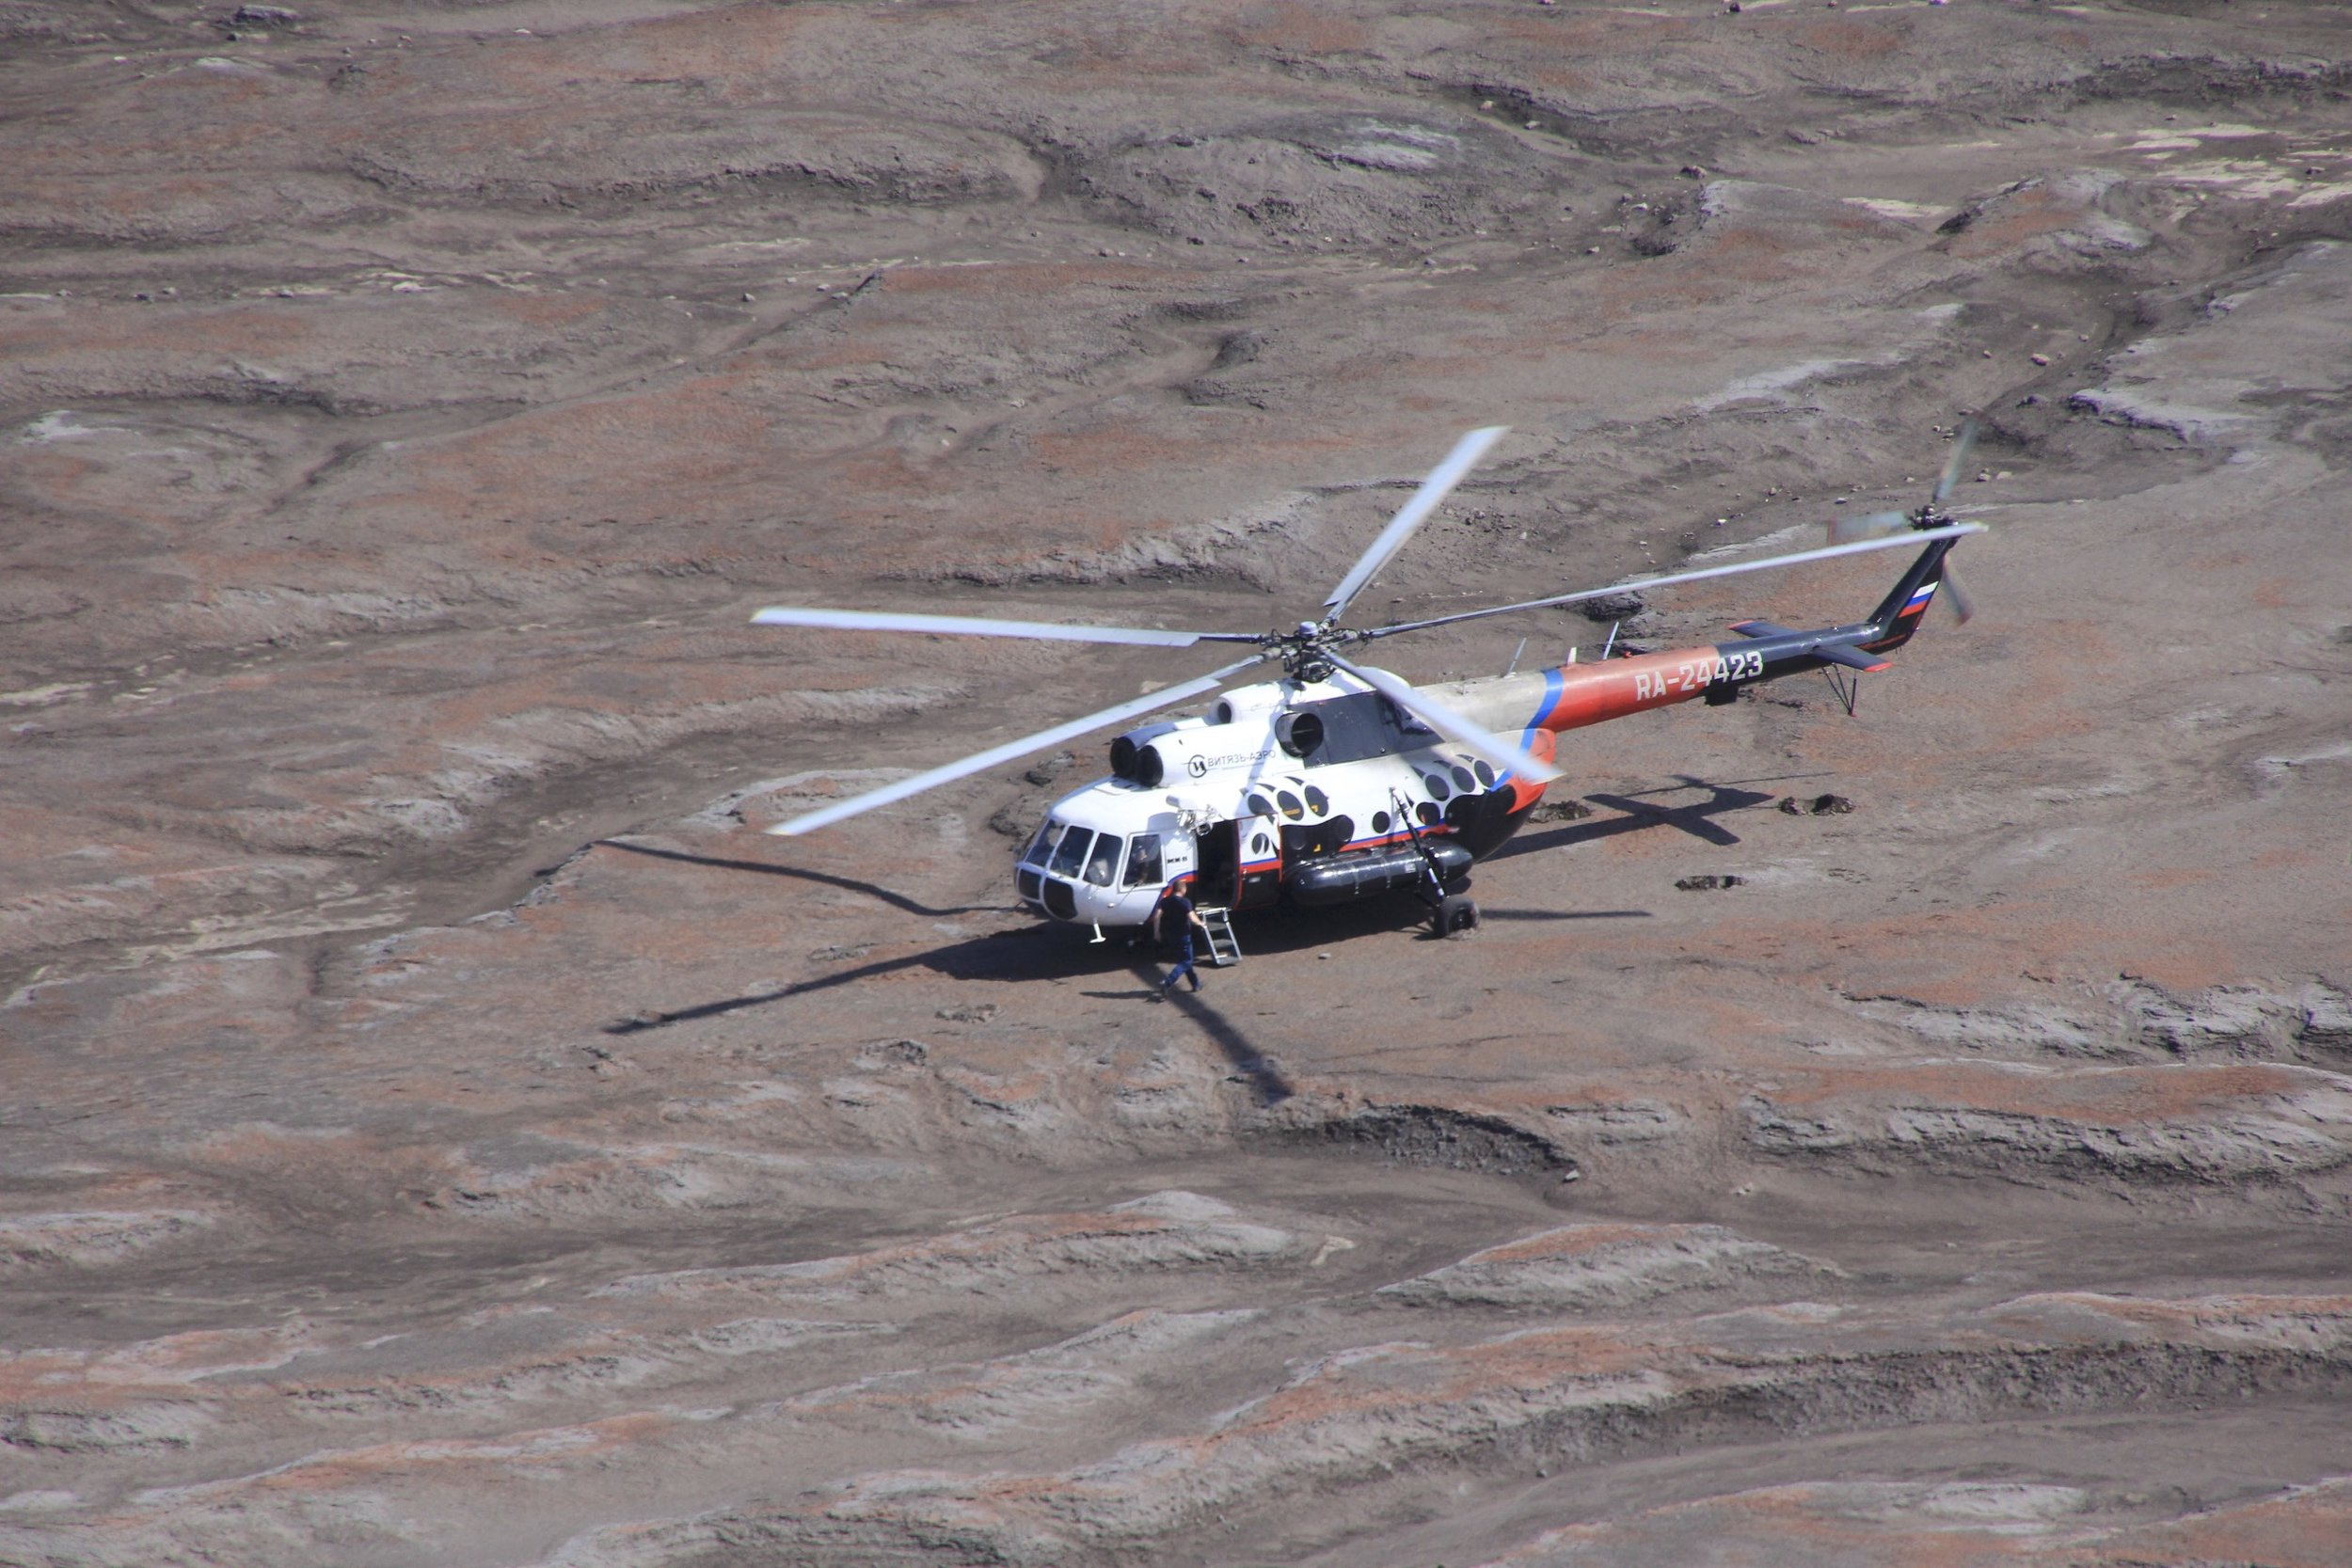 One can take a day trip to the Gorely crater from PK for around $700 US per person. The large Mi8 helicopter takes about 24 passengers. It has max cruising speed of 225km/h and a flight range of 900km. It is the most popular twin engine helicopter in the world. We observed their approach and landing. On the next photo, see the helicopter parked in front of the crater for scale!